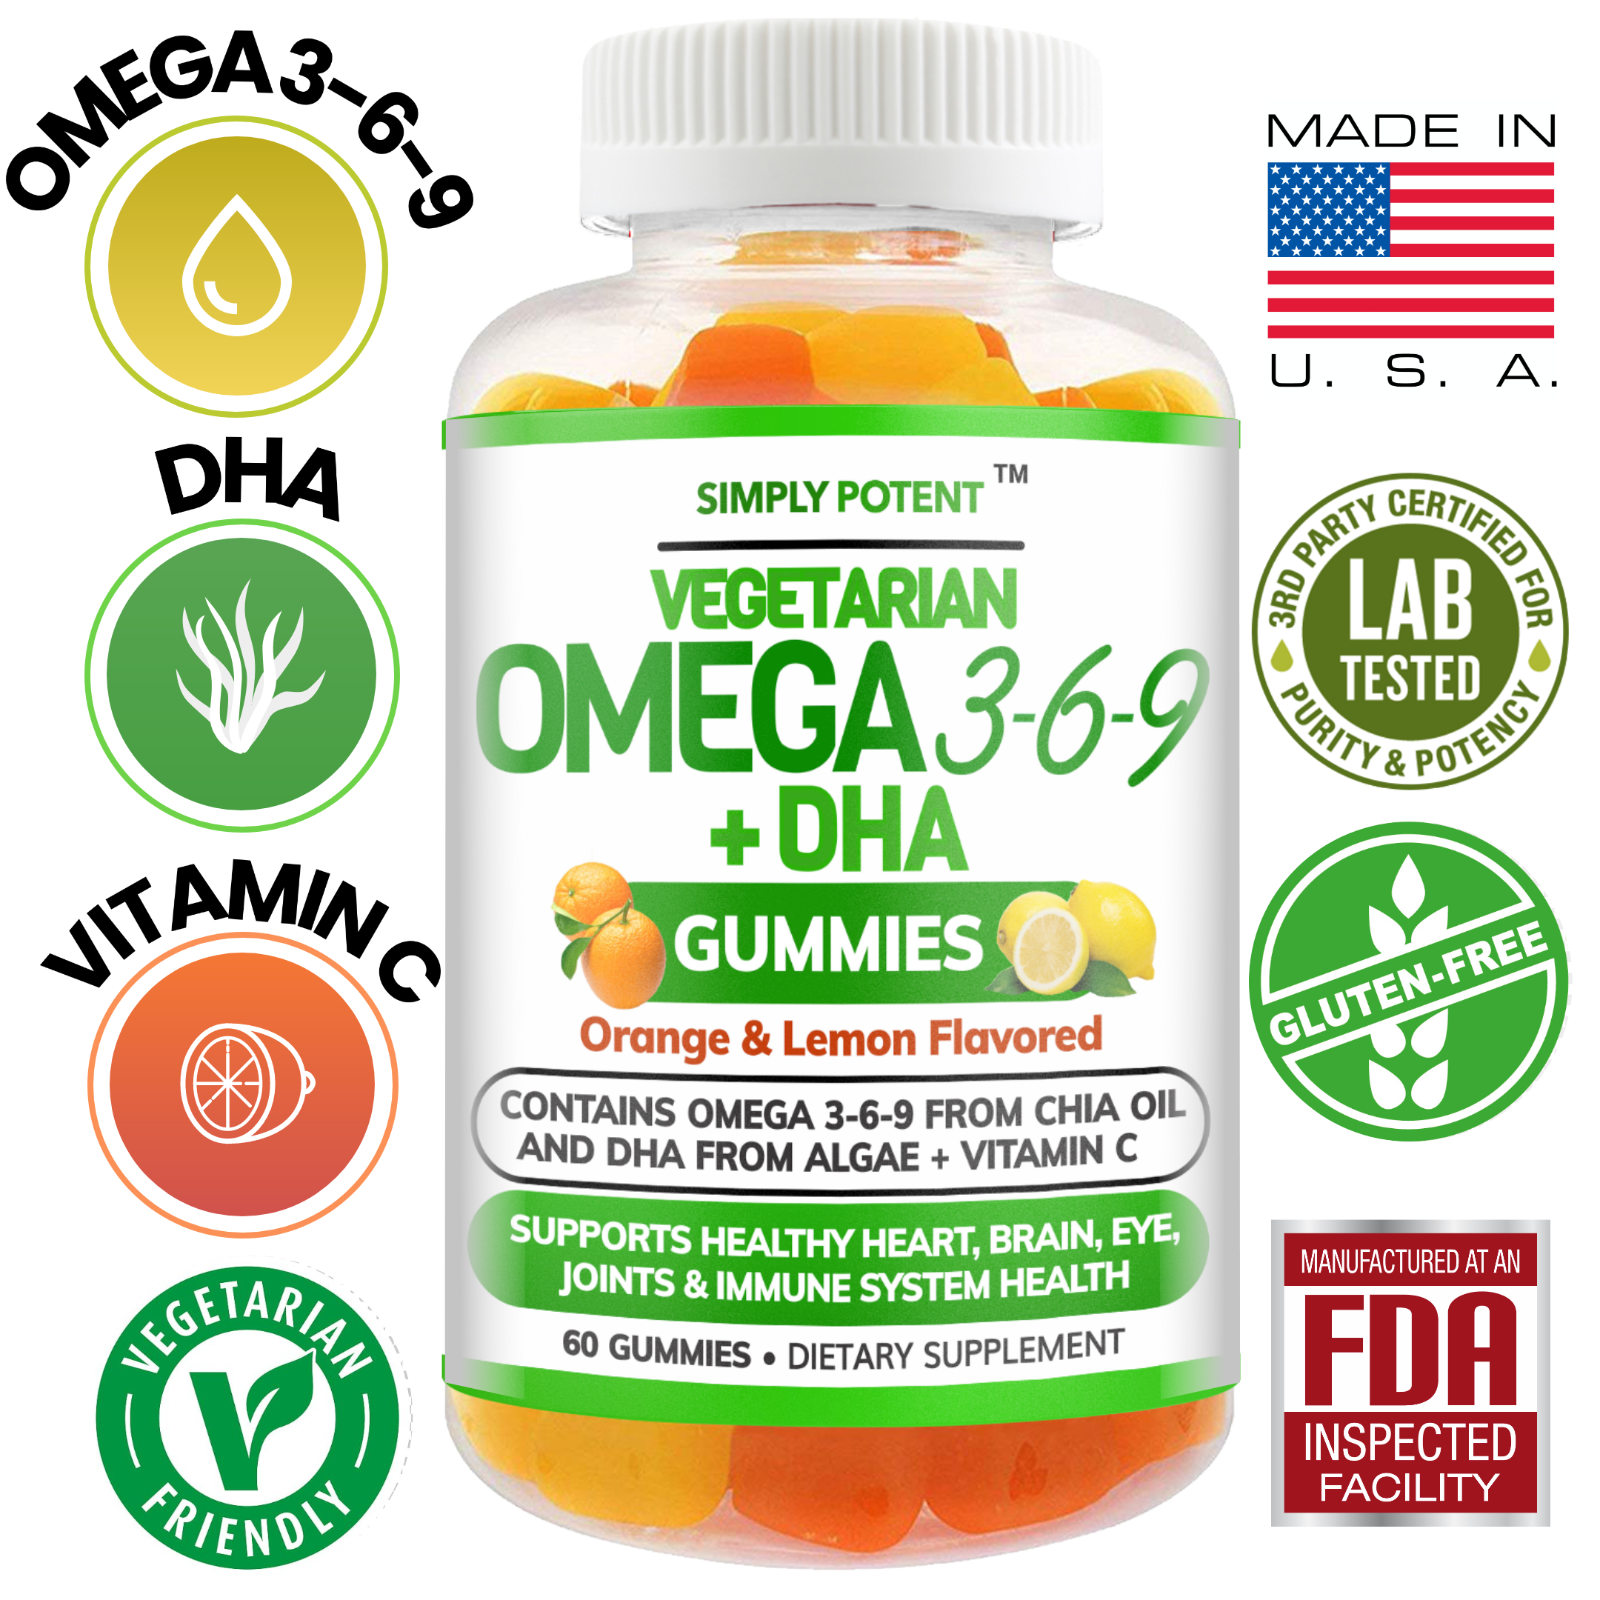 Omega 3 6 9 + DHA + Vitamin C Fish-Free Gummies for Brain, Heart, Joint Support